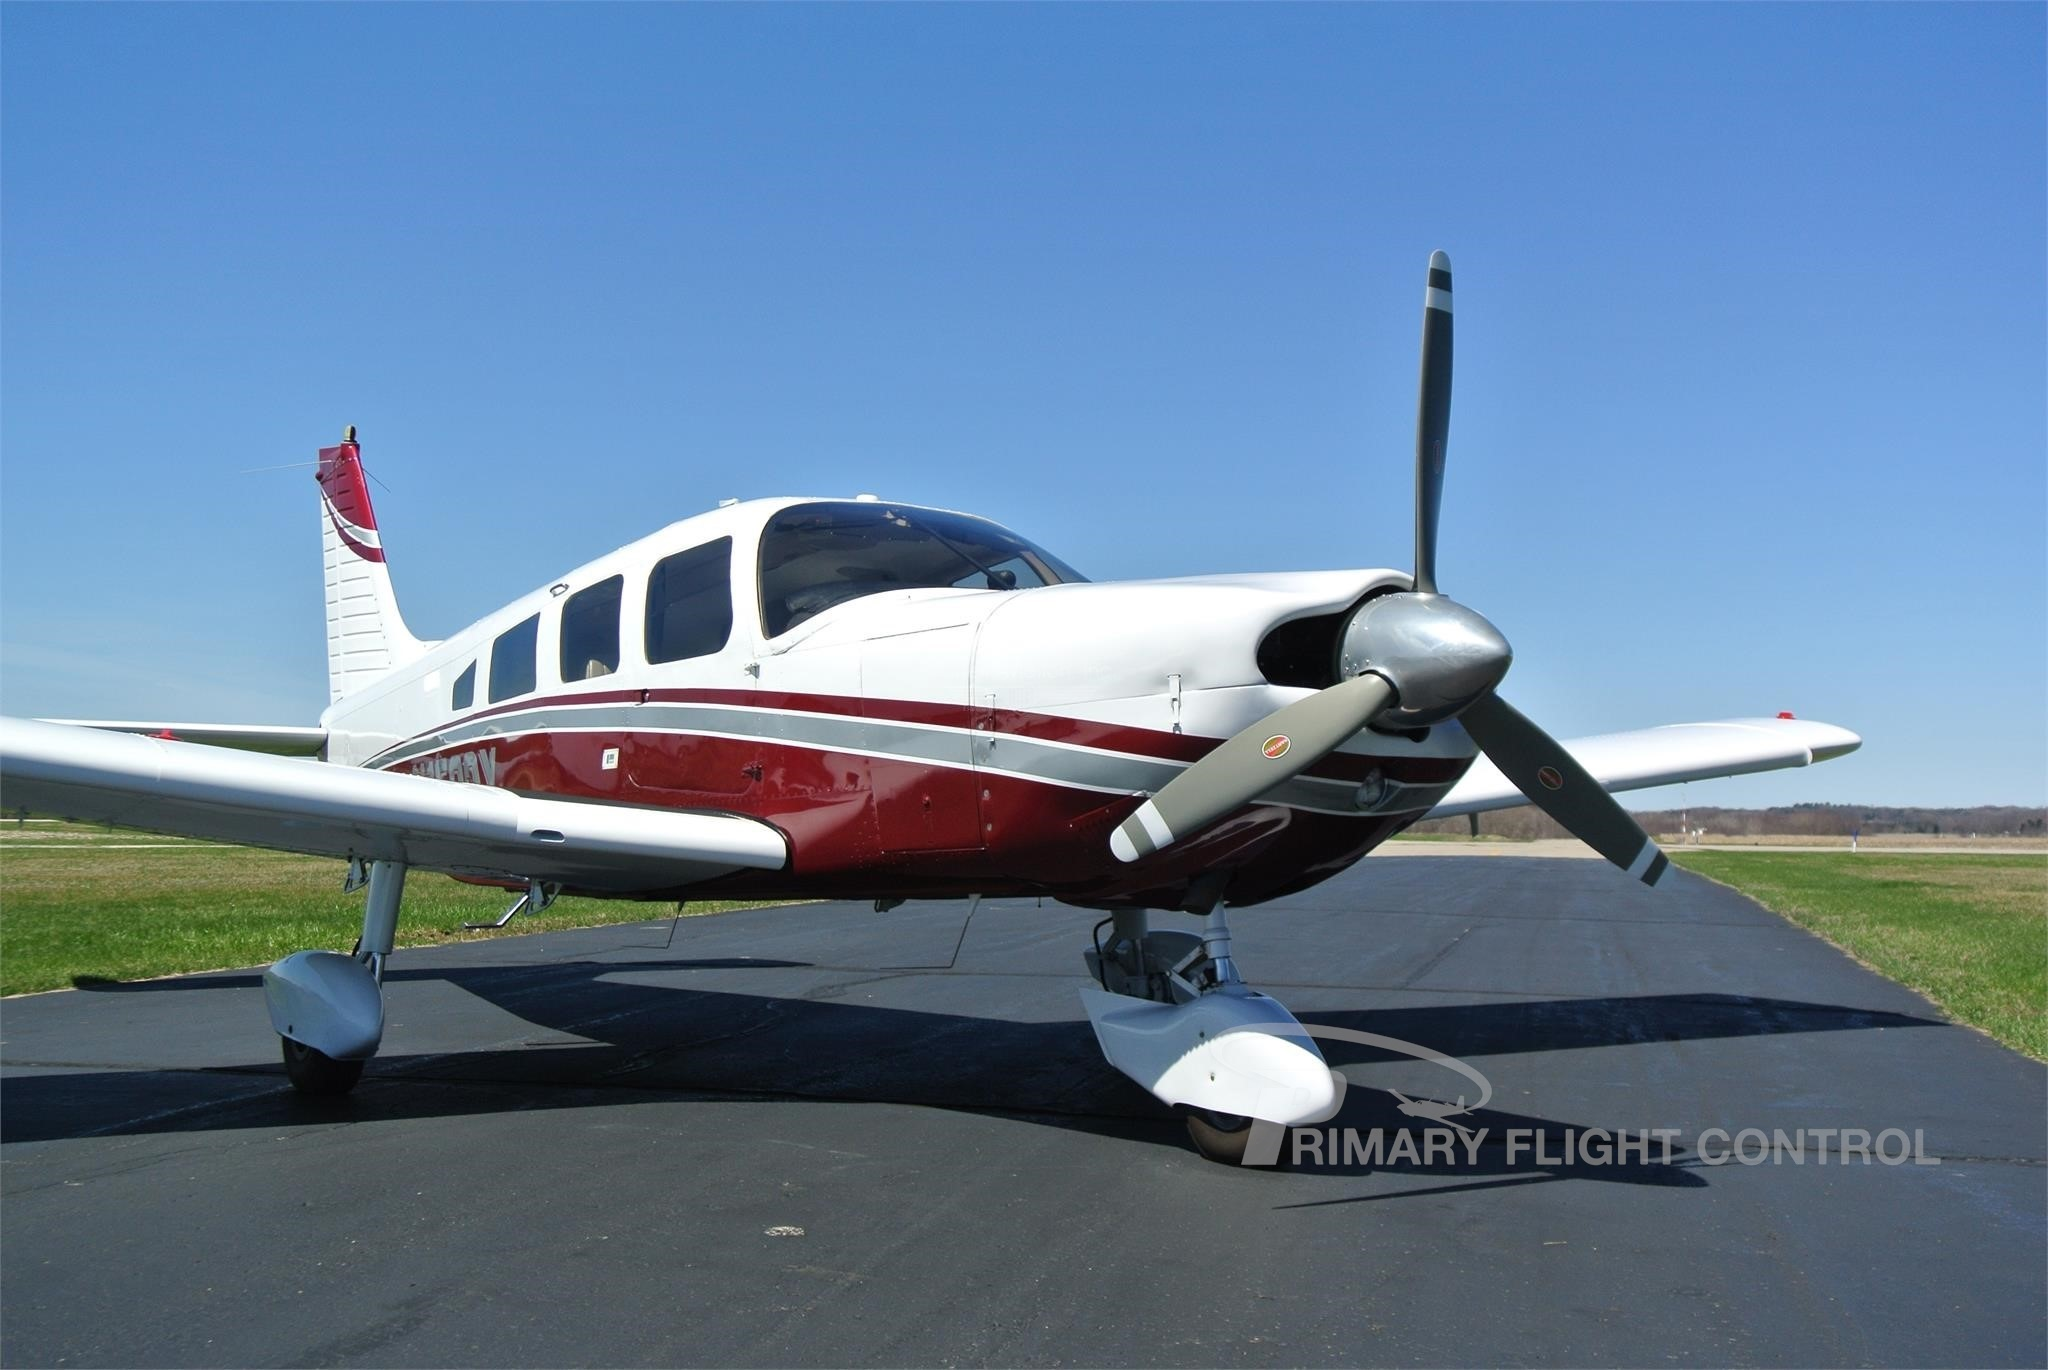 Airplane For Sale - 1975 Piper PA-32-300 Cherokee Six